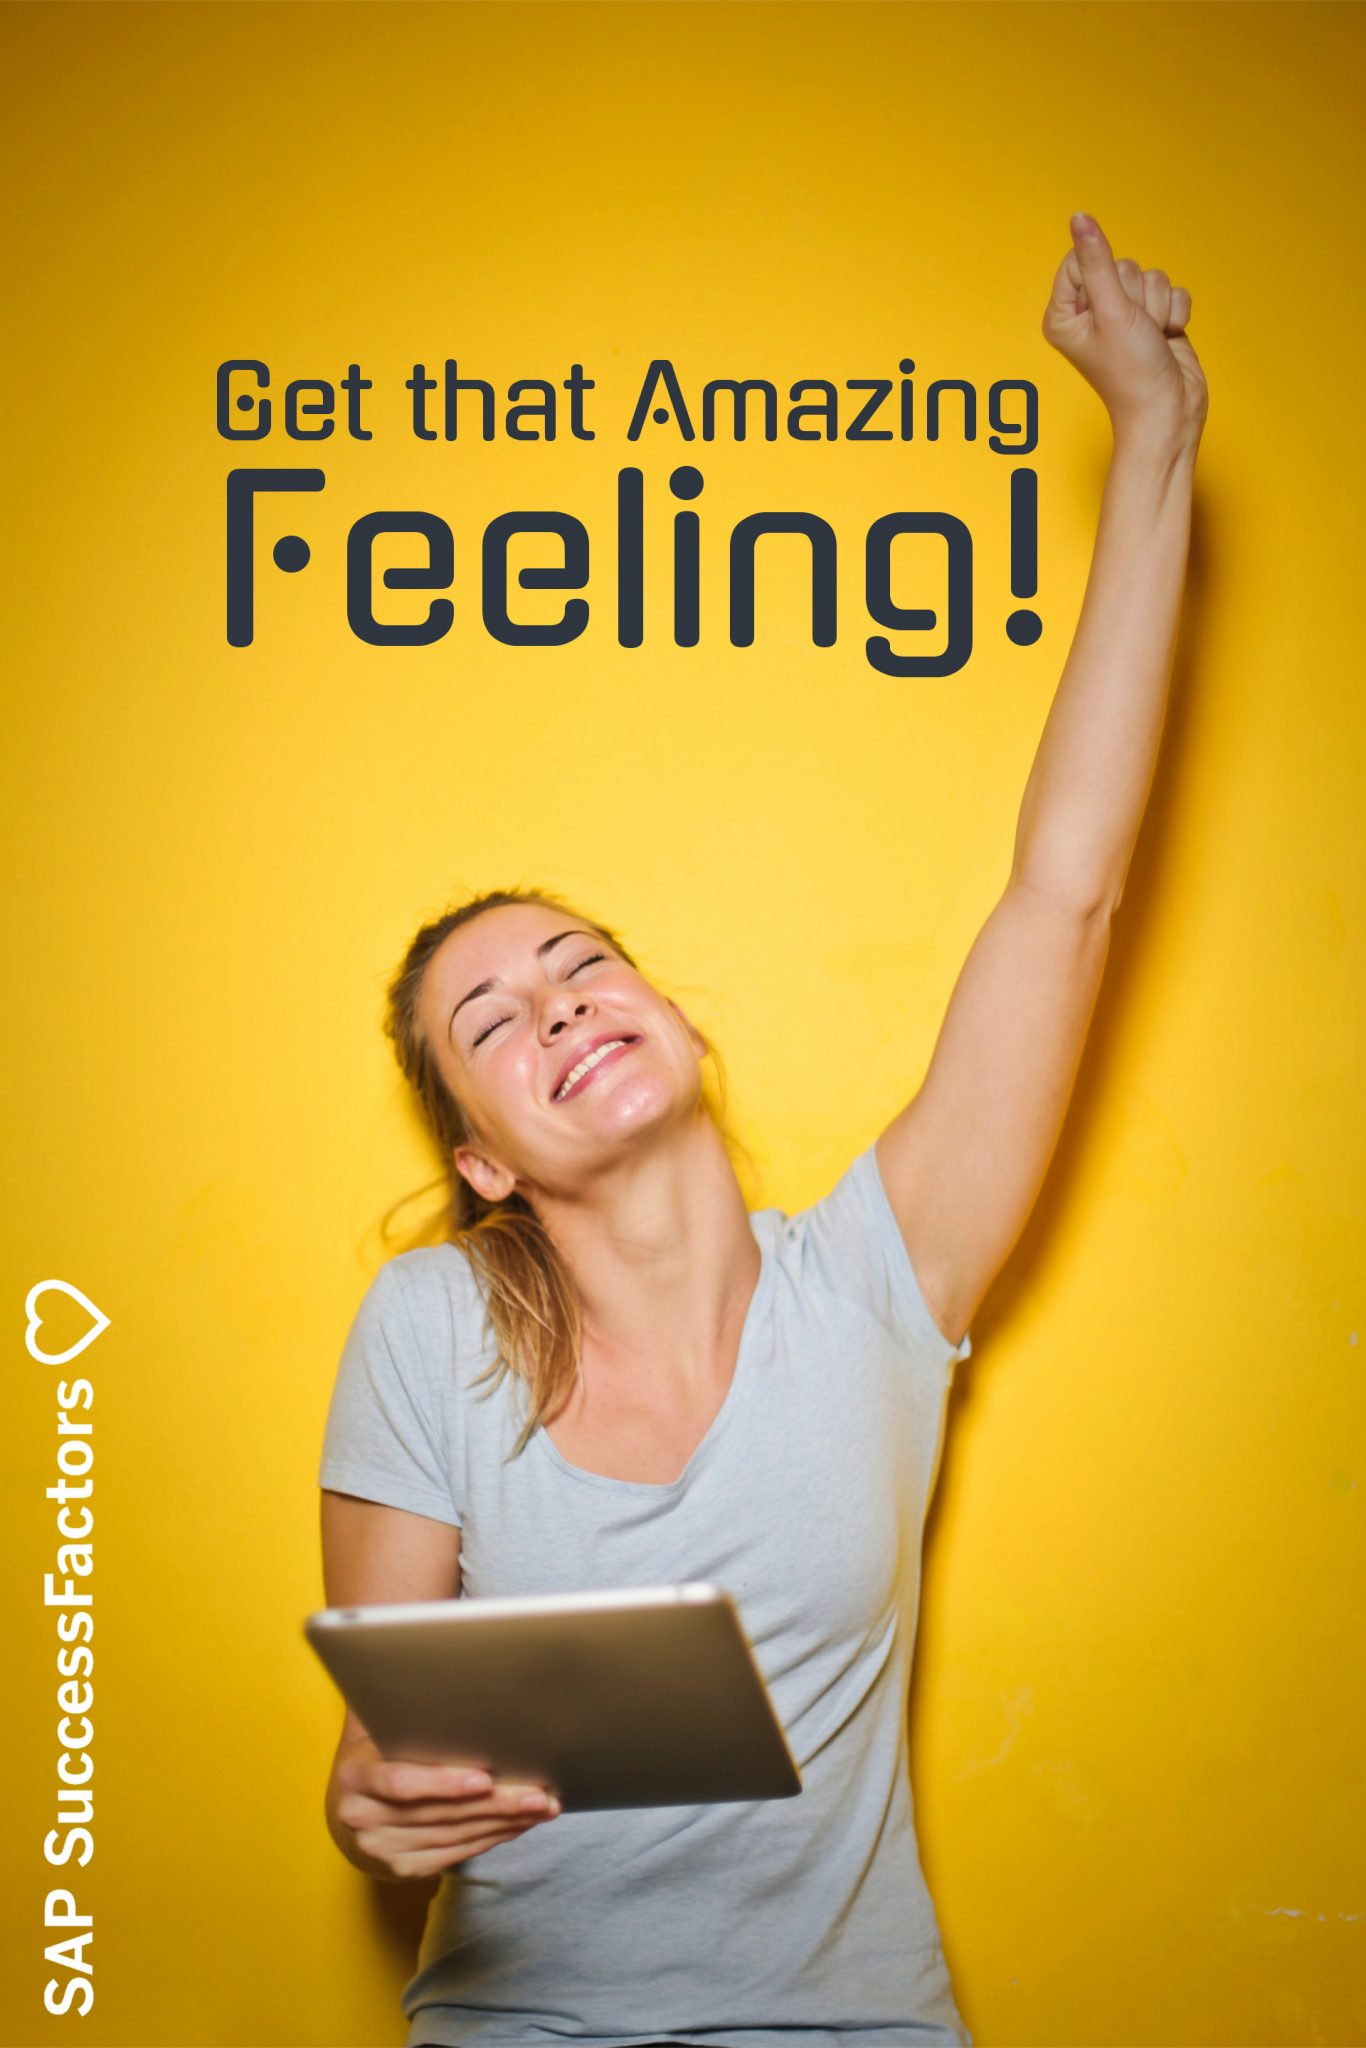 Get that amazing feeling